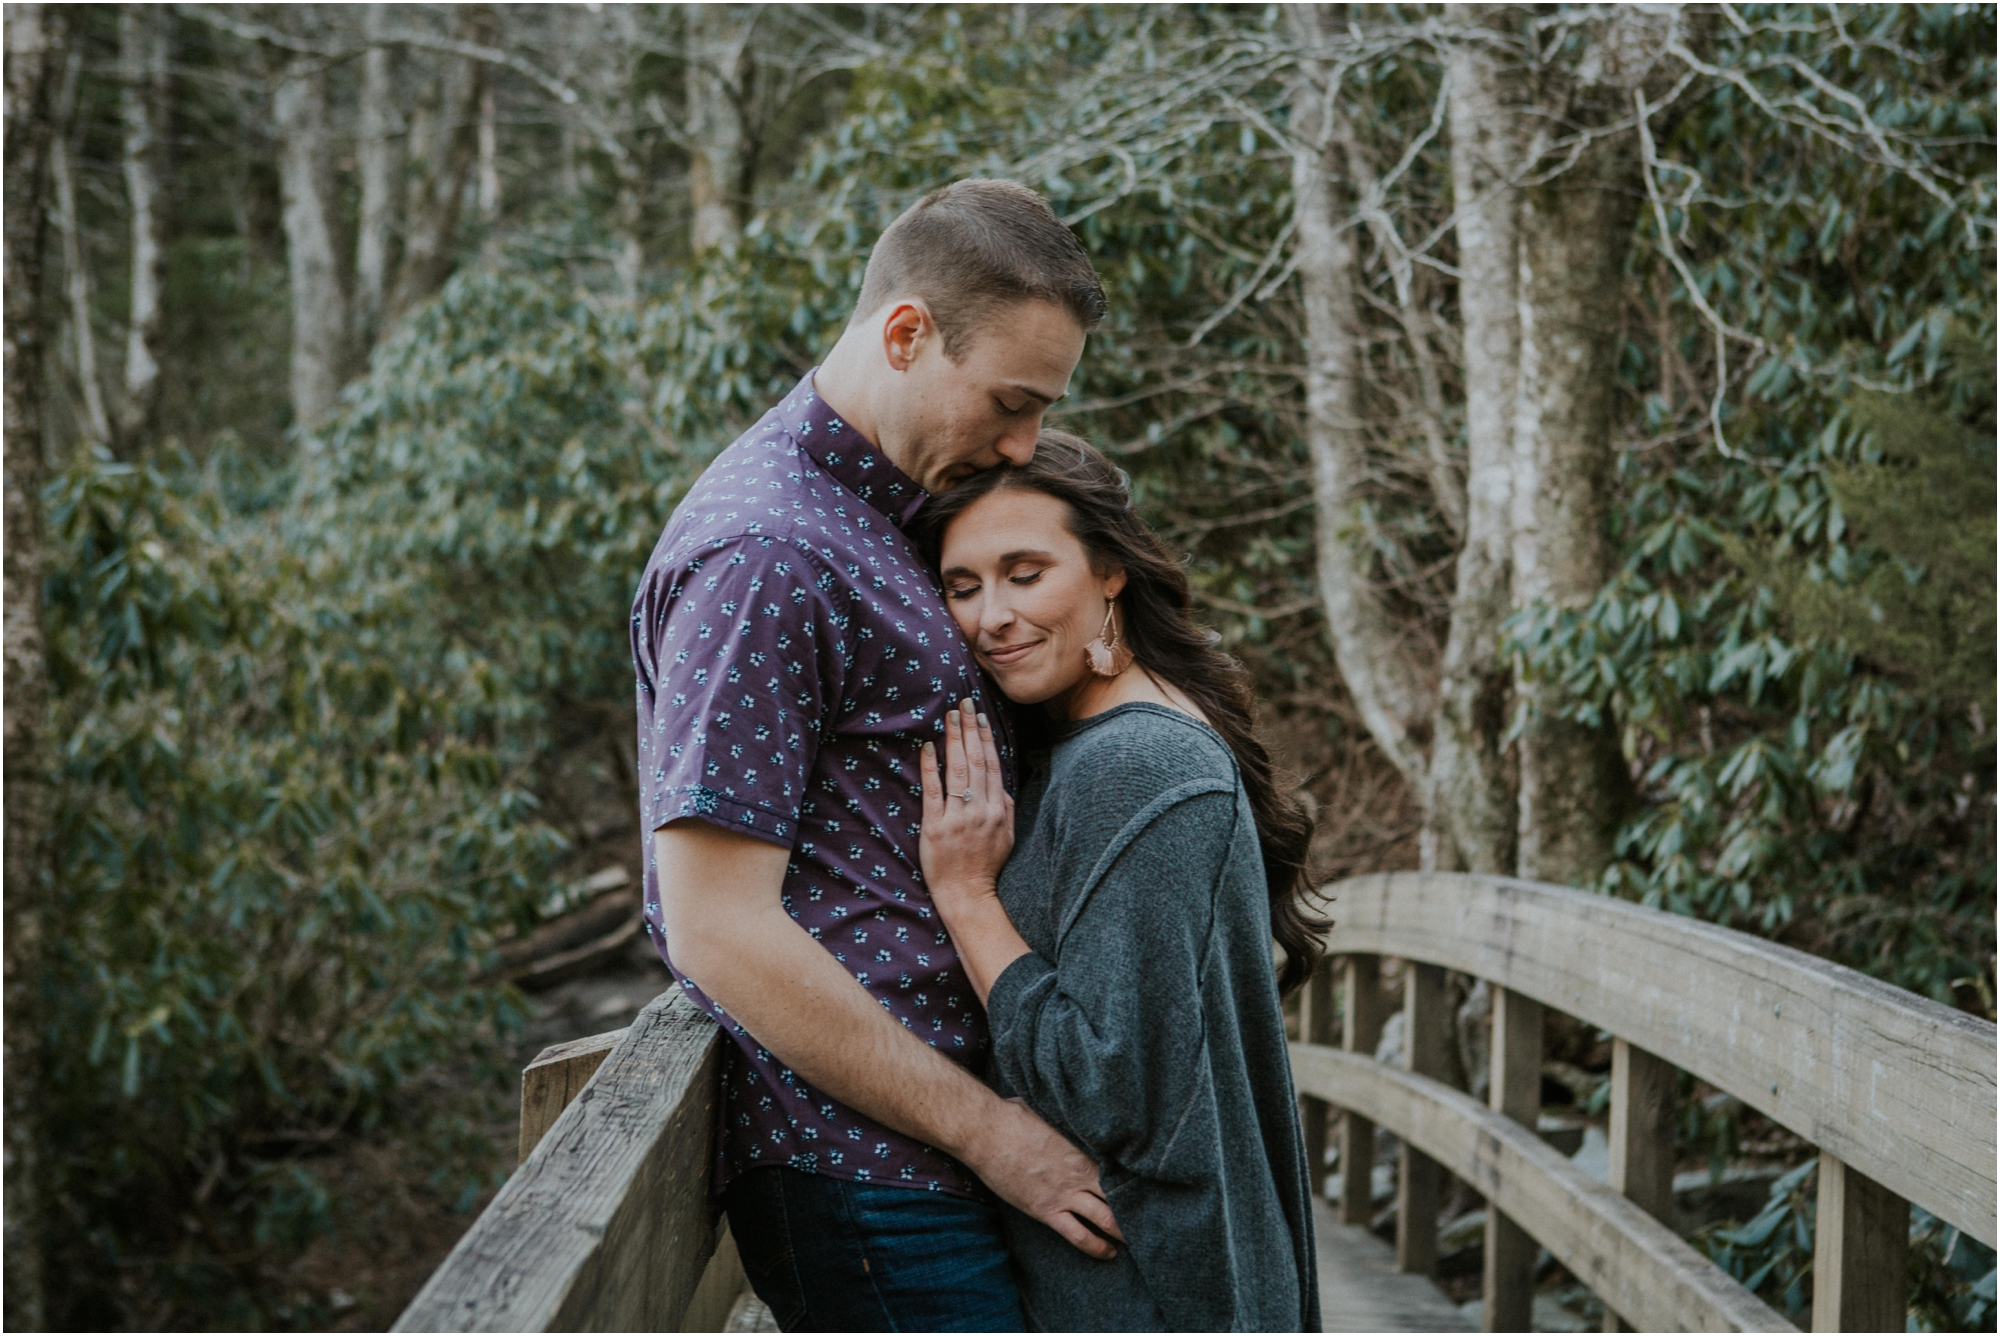 blue-ridge-parkway-engagement-session-north-carolina-boone-blowing-rock-northeast-tennessee-katy-sergent-photography_0005.jpg